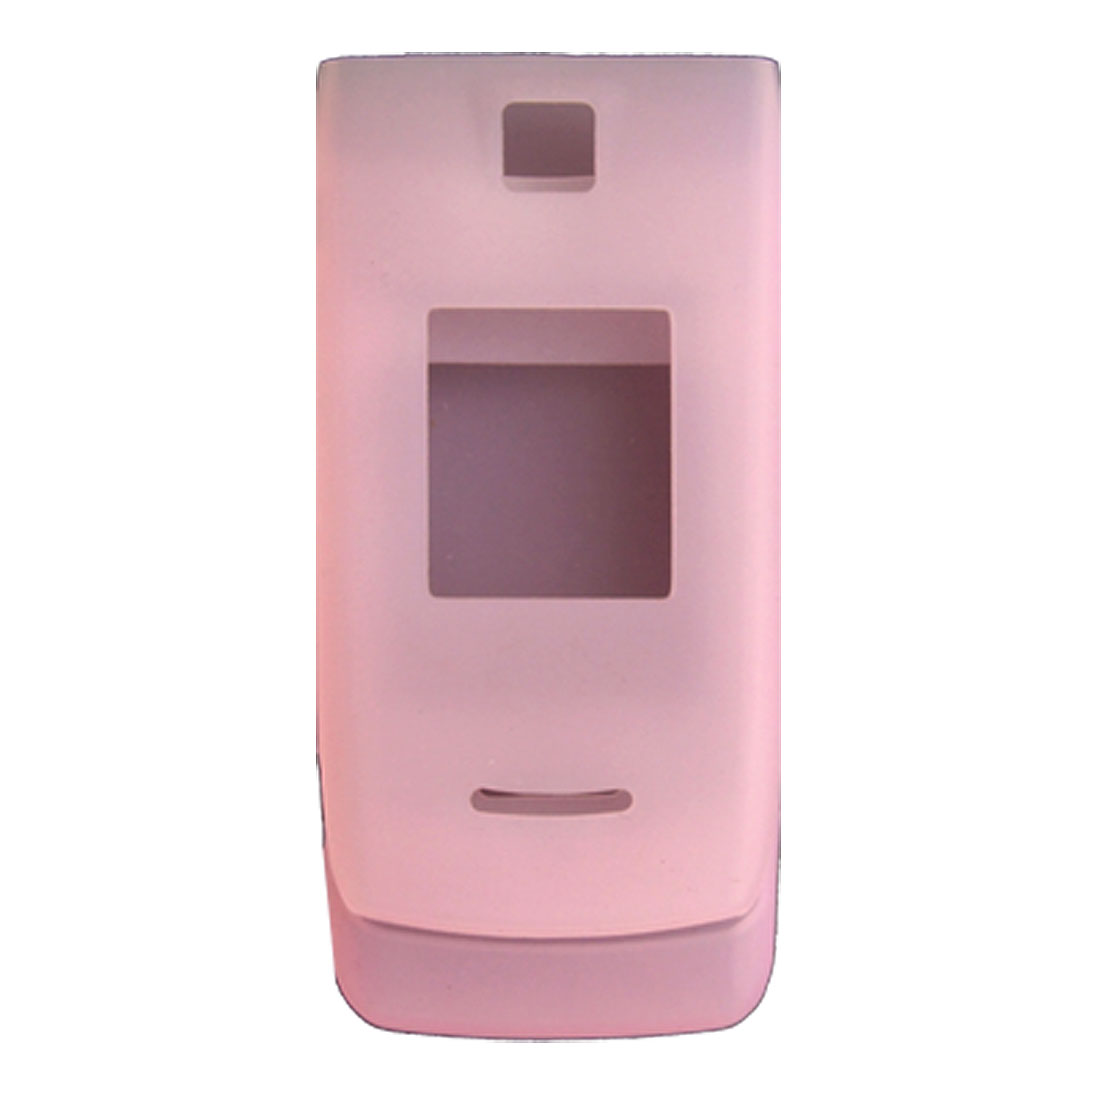 Soft Pink Silicone Skin Case Protector for Nokia 3610F